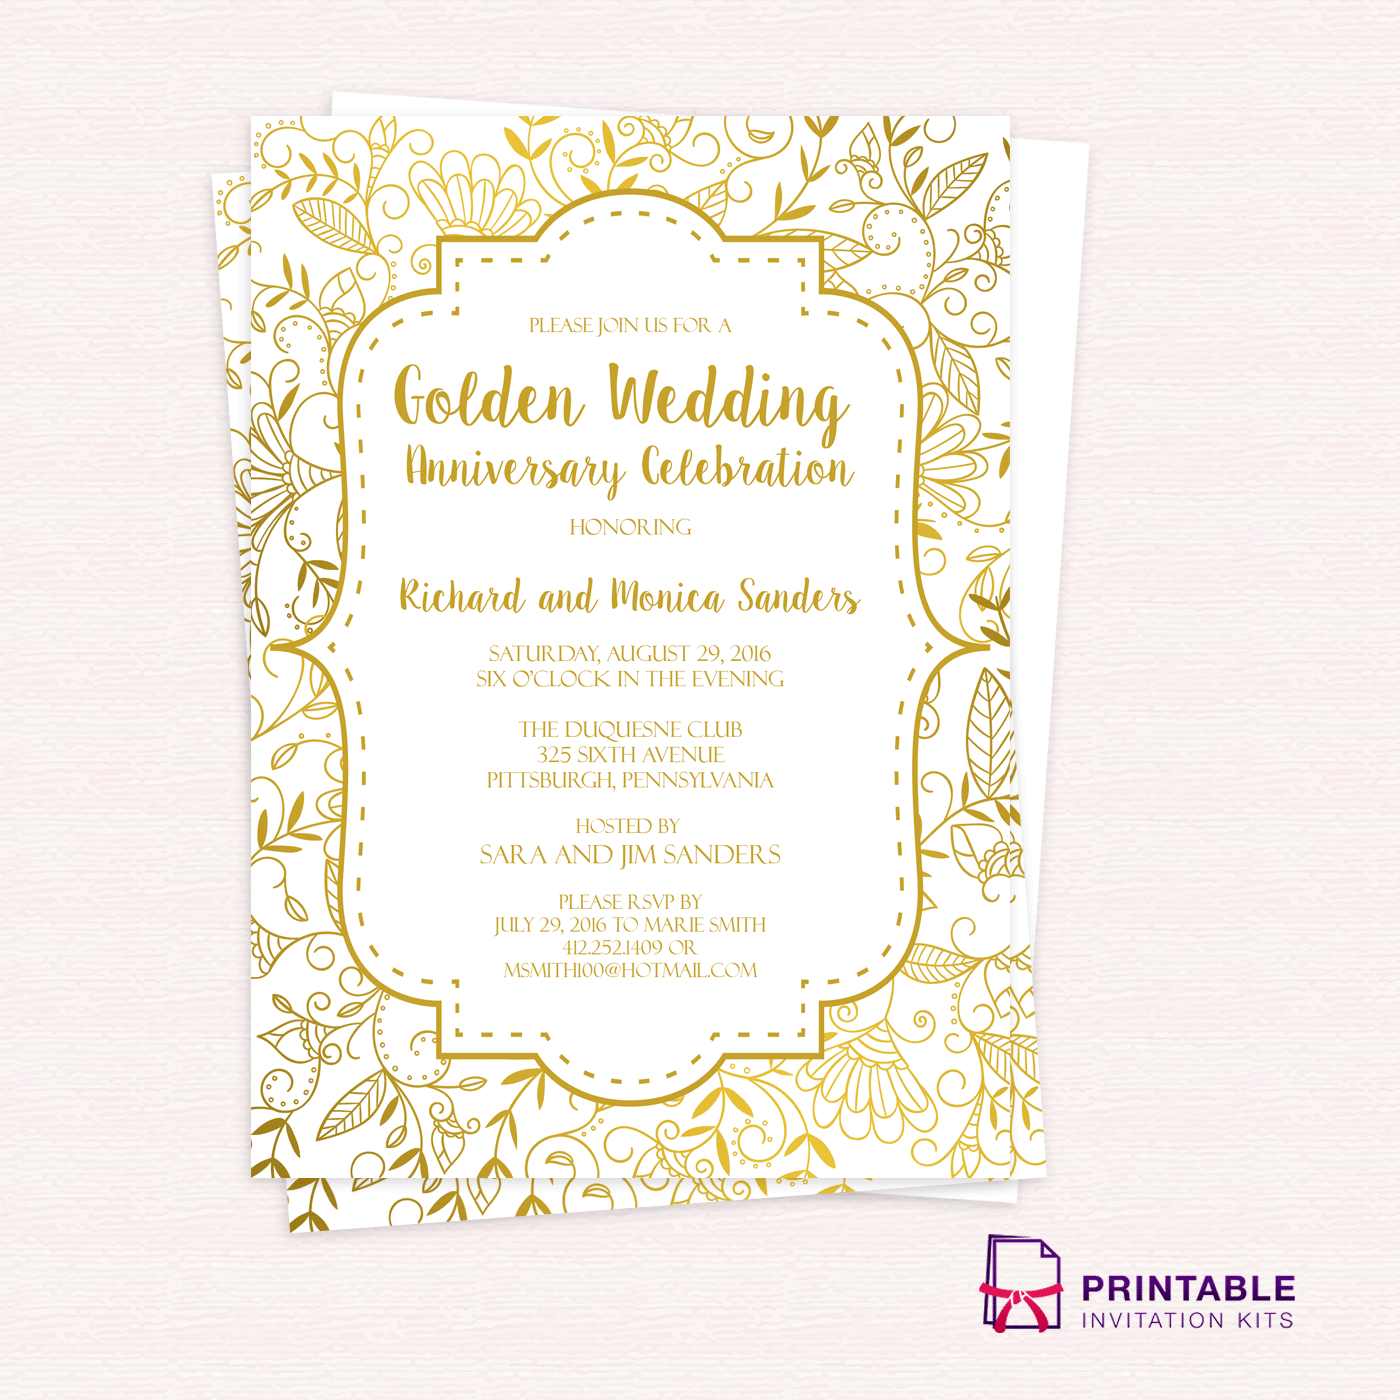 Golden wedding anniversary invitation template anamaurice golden wedding anniversary invitation template stopboris Choice Image